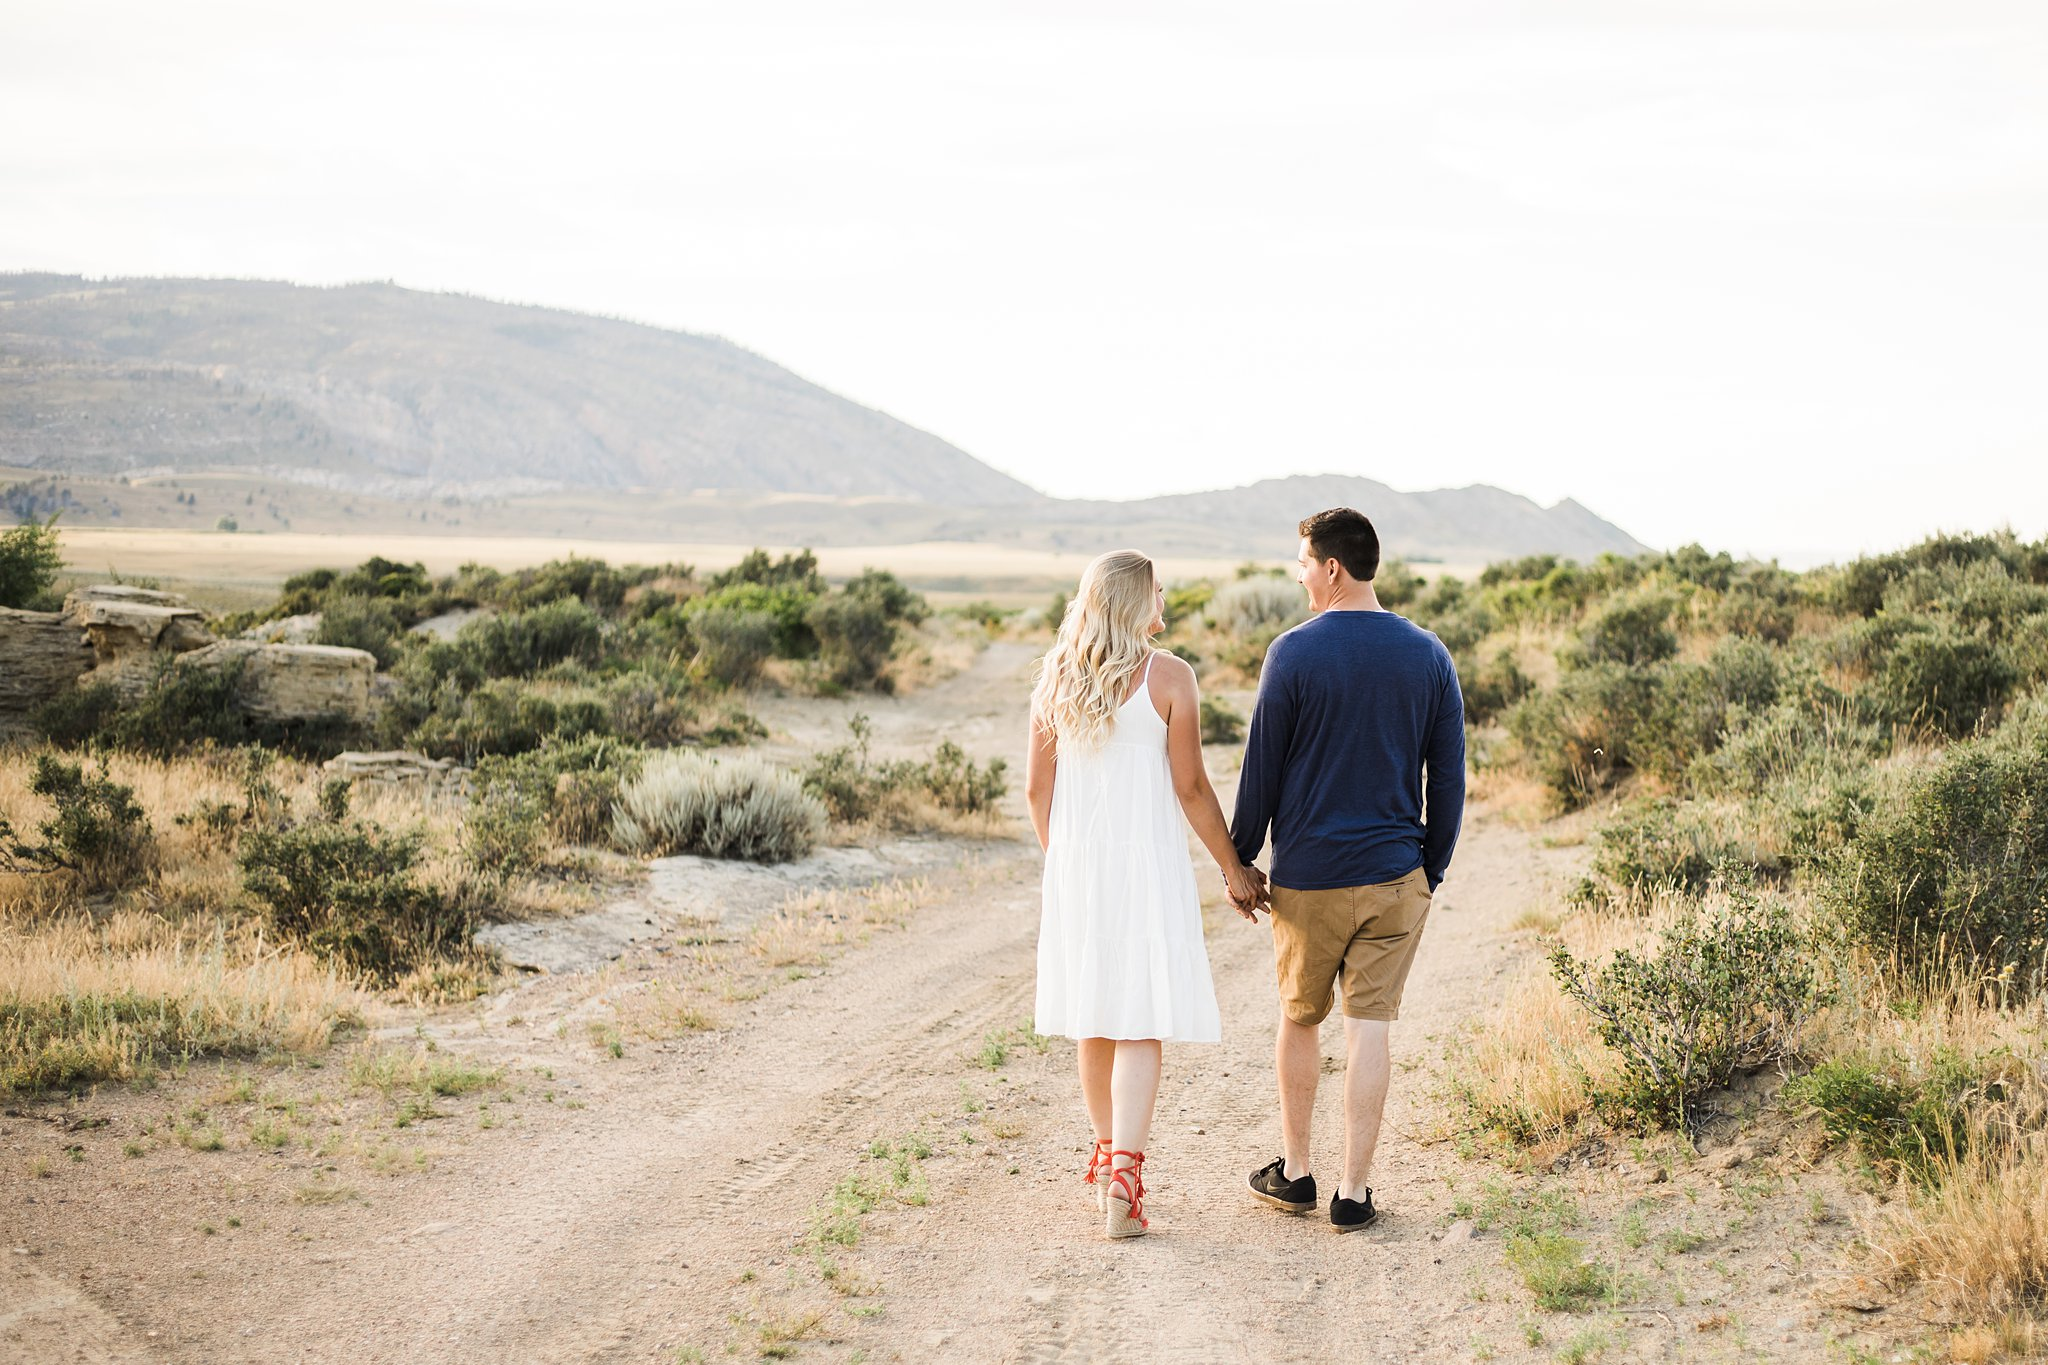 engagement photography of a couple walking hand in hand